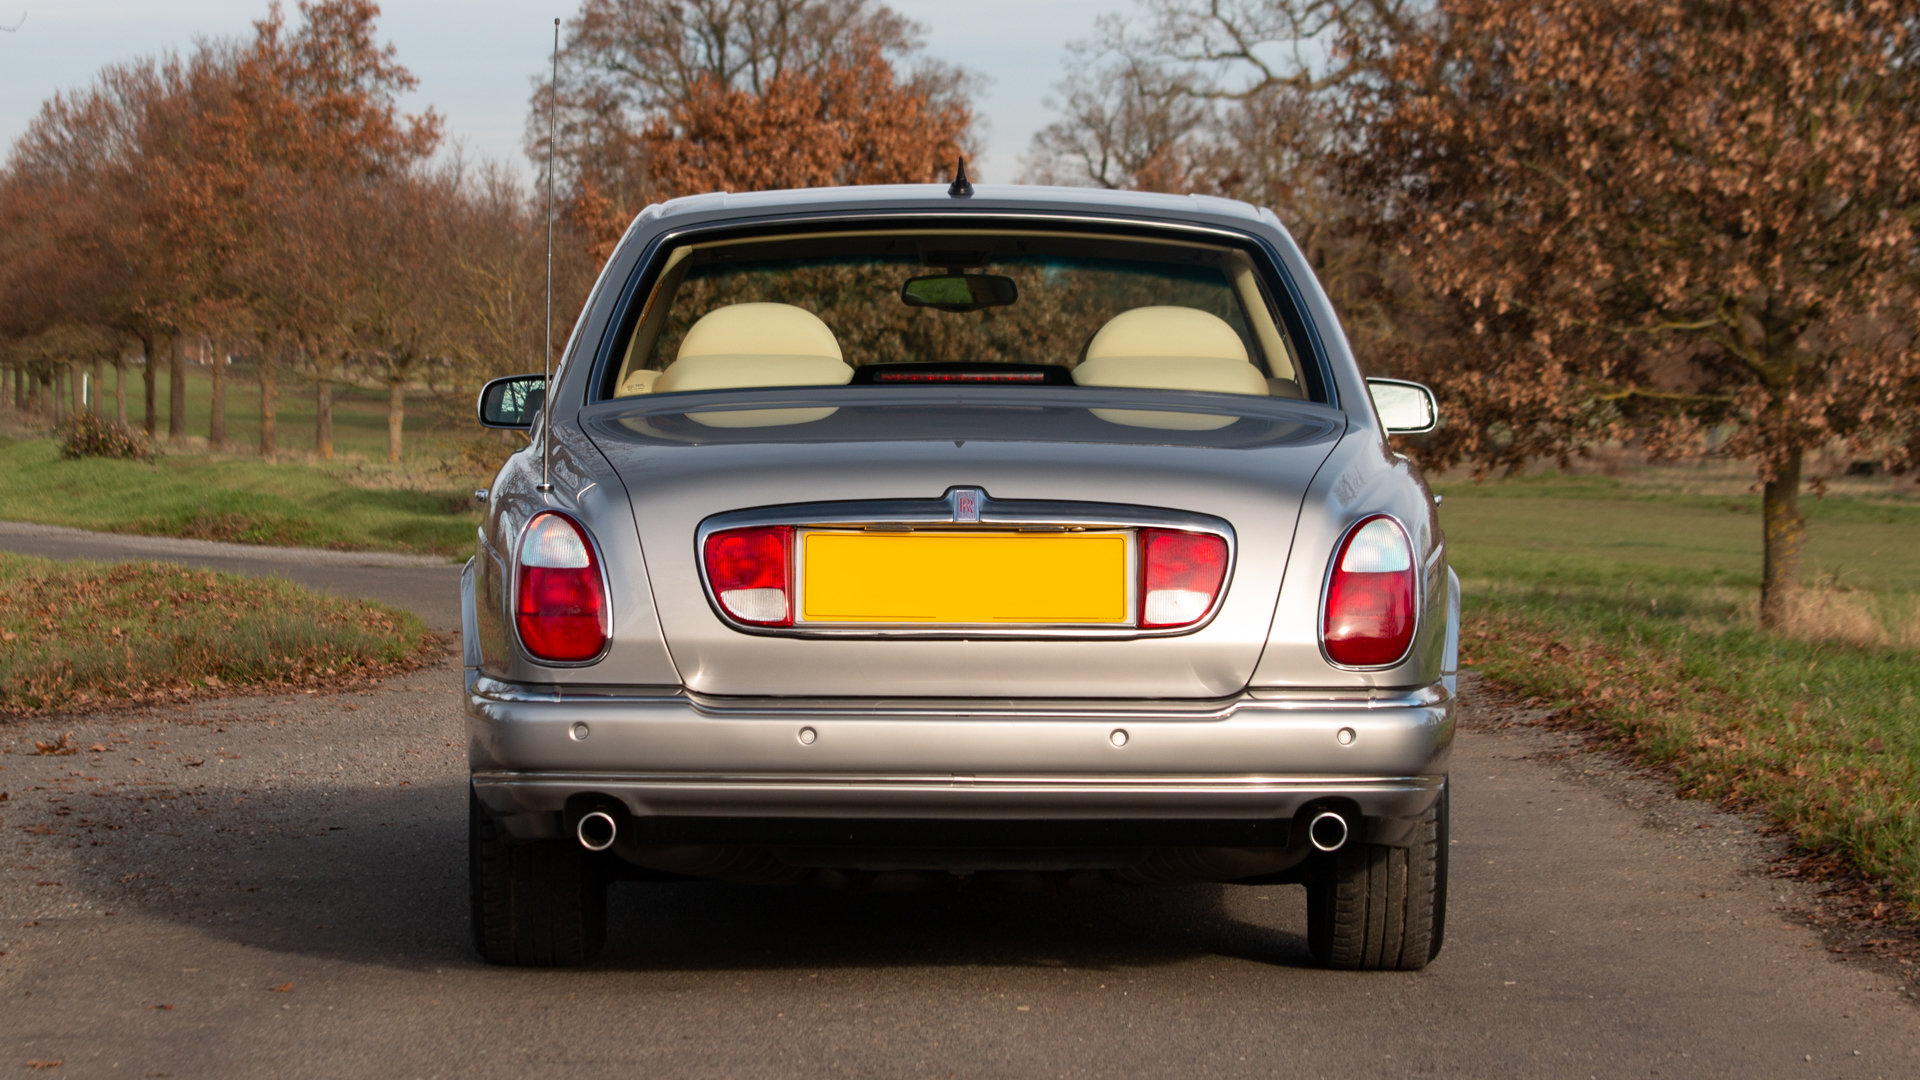 2002 Last of Line Rolls Royce Silver Seraph For Sale (picture 4 of 6)